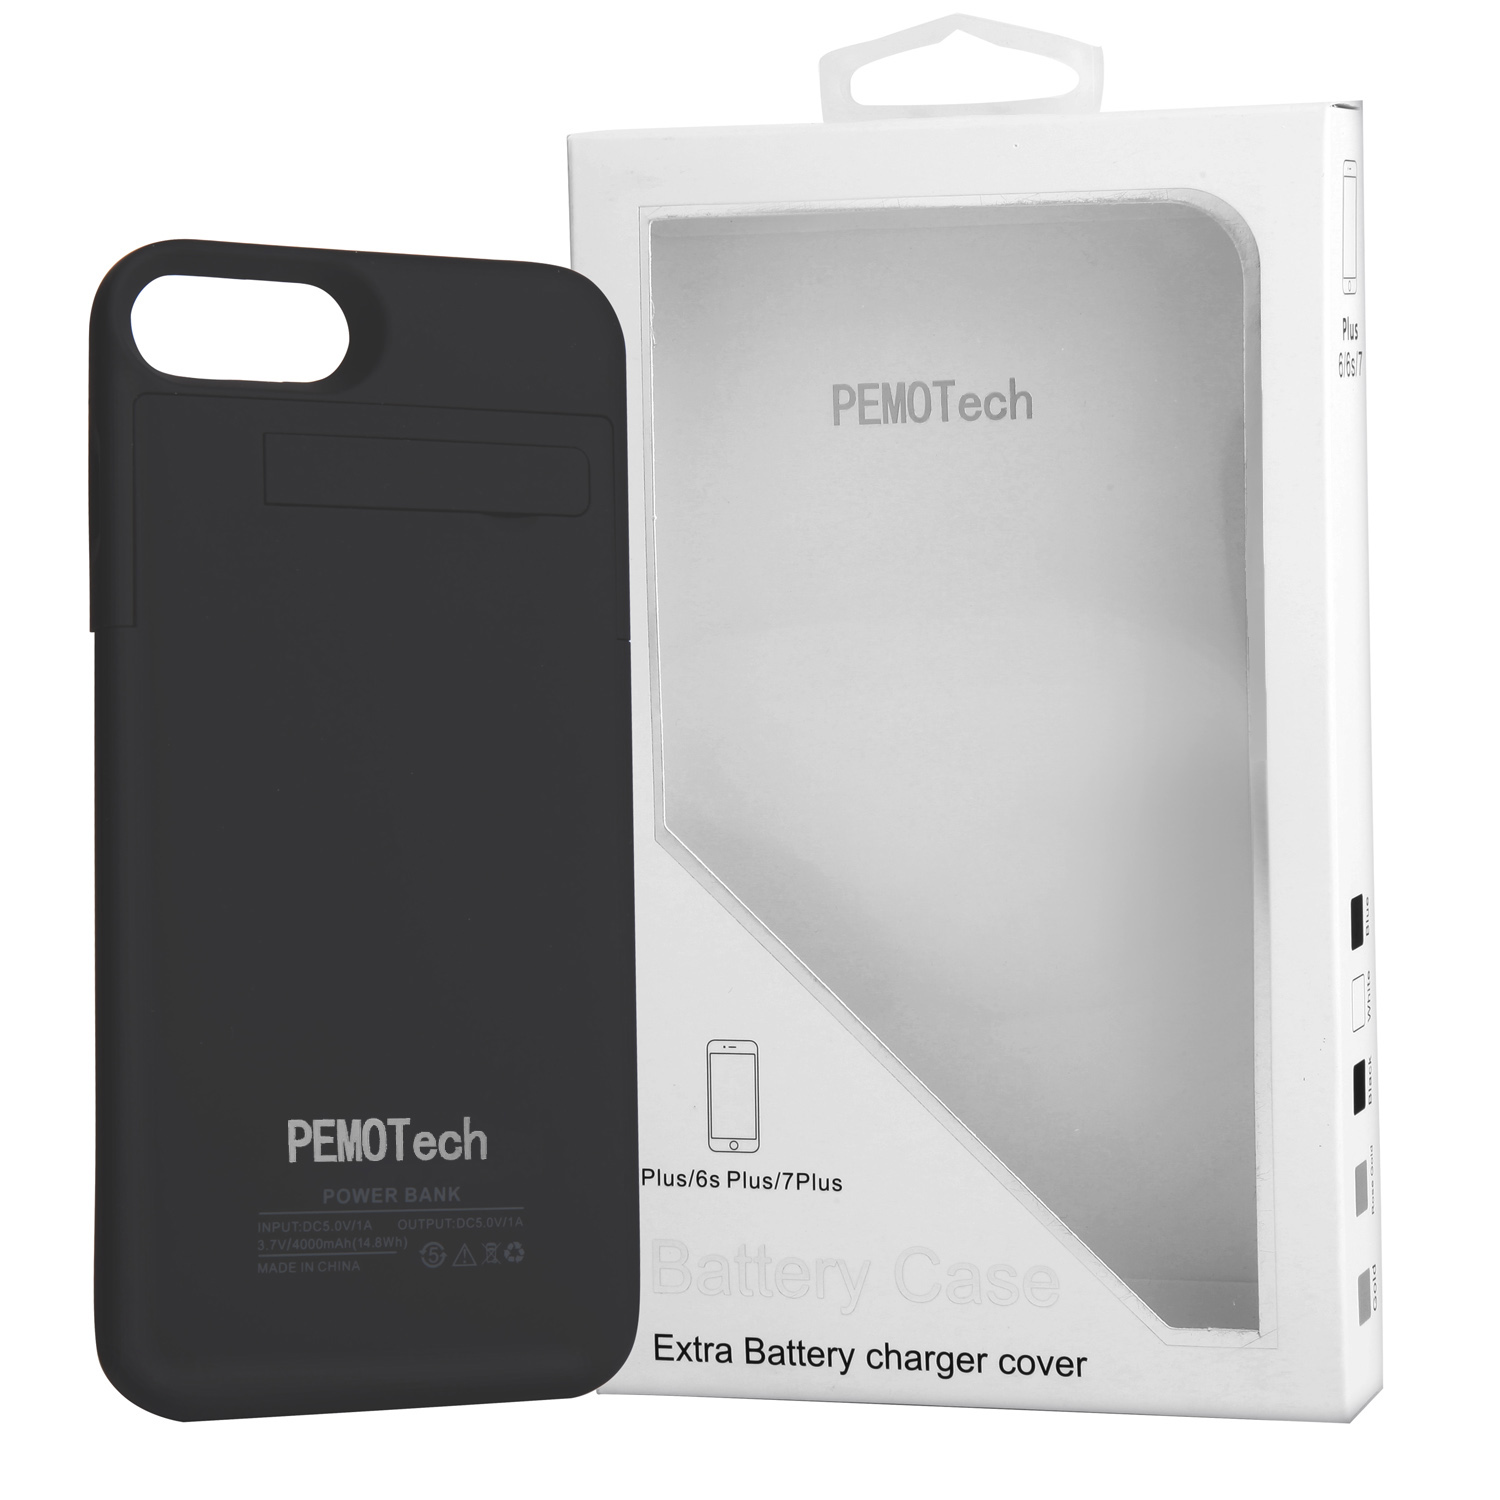 PEMOTech Energy Series 4800mAh Kickstand Battery Charger Case for iPhone 6 Plus / 6s Plus - Black